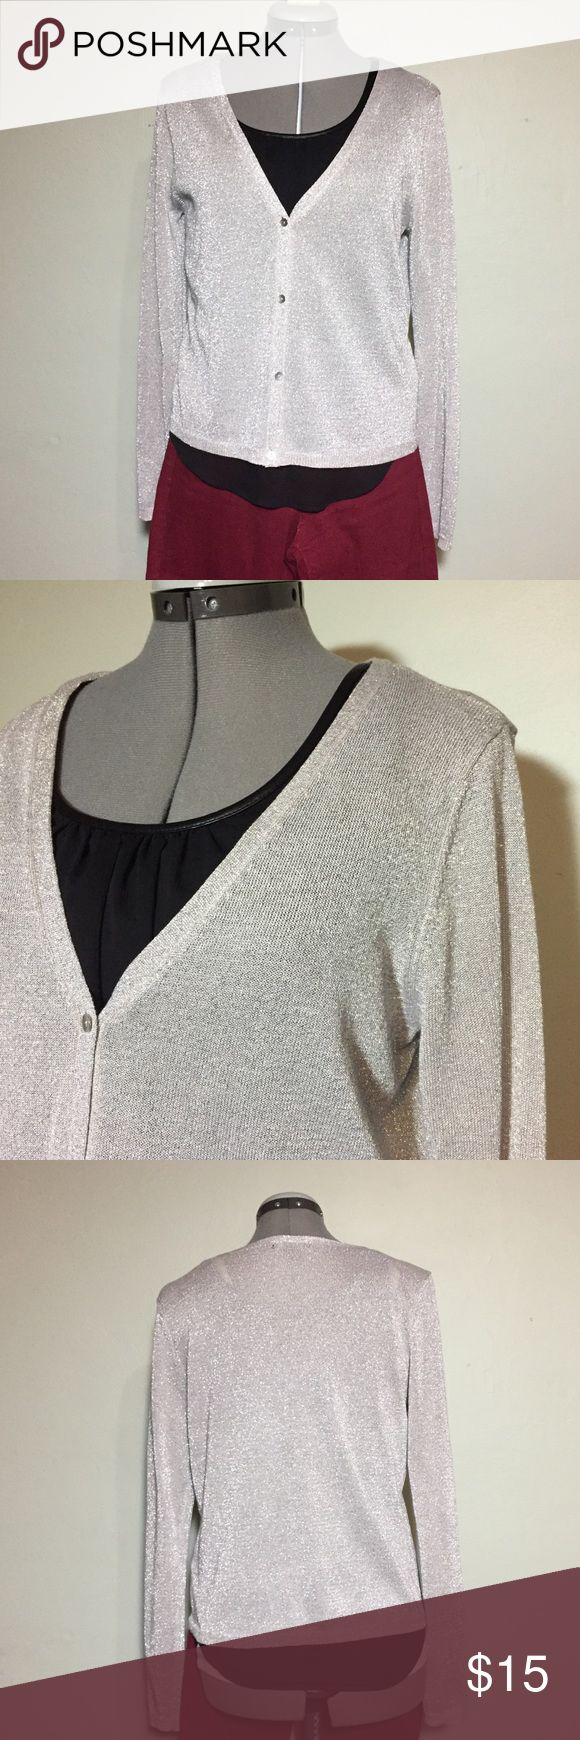 """H&M Light Gray Silver Cardigan - Holiday Ready L H&M Light Gray Silver Cardigan Sweater. The silver metallic woven throughout would look great with a holiday outfit. Size L measures flat: 16"""" across shoulders, 19"""" across chest, 21"""" ladies no, 25"""" sleeve. 61% viscose, 25% poly, 14% metallic. 1120/50/112817 H&M Sweaters Cardigans"""